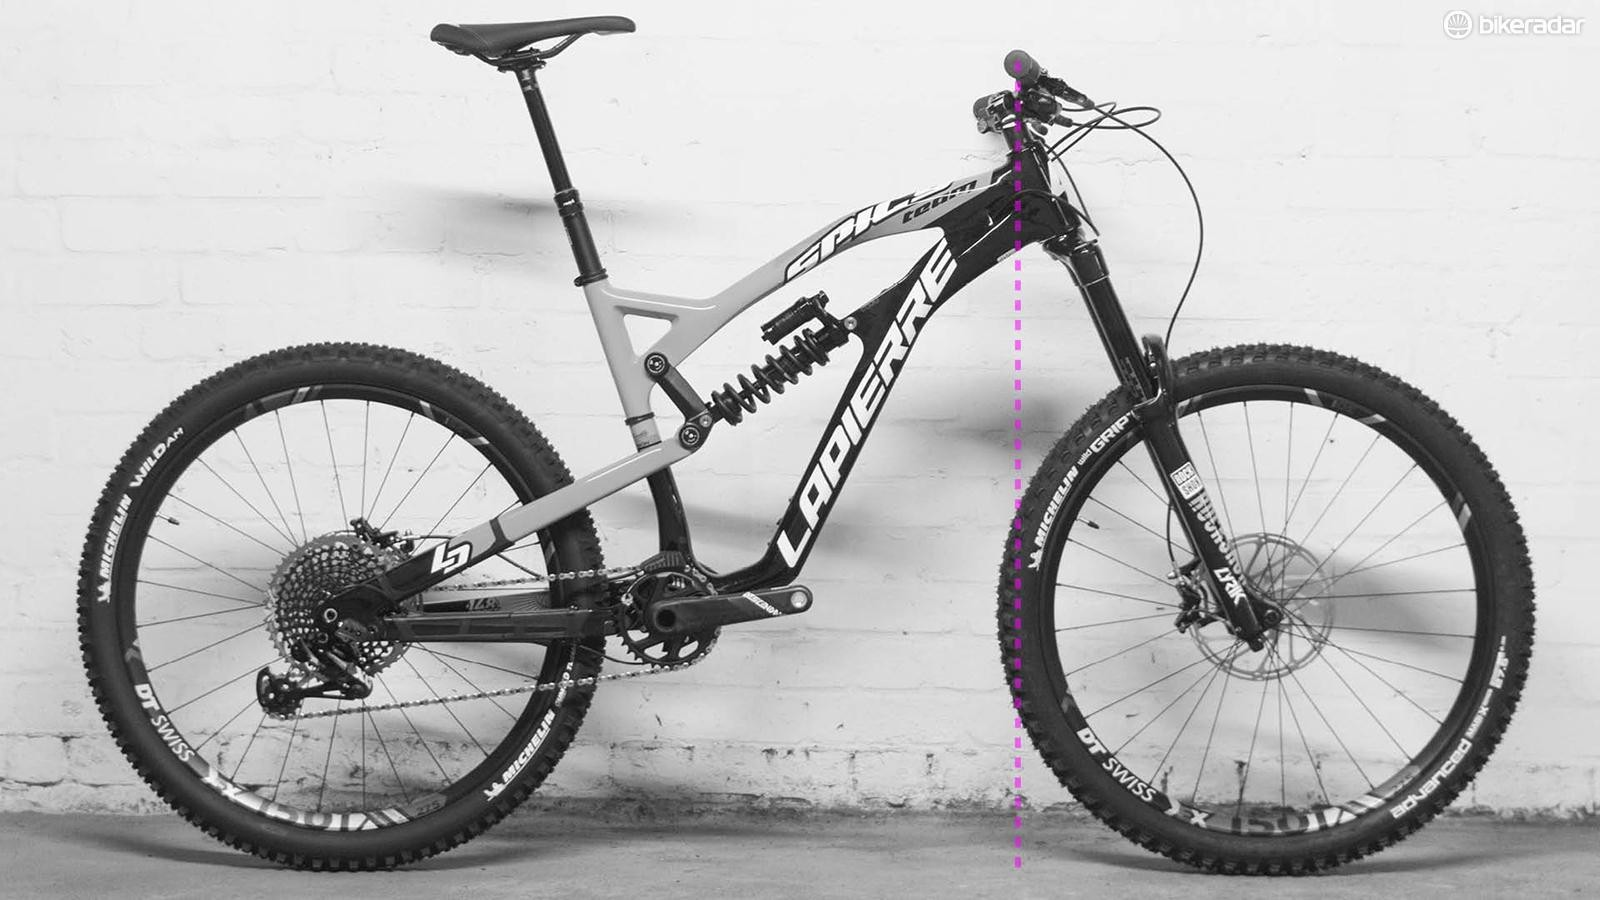 Handlebar height affects weight distribution and the body's ability to absorb impacts